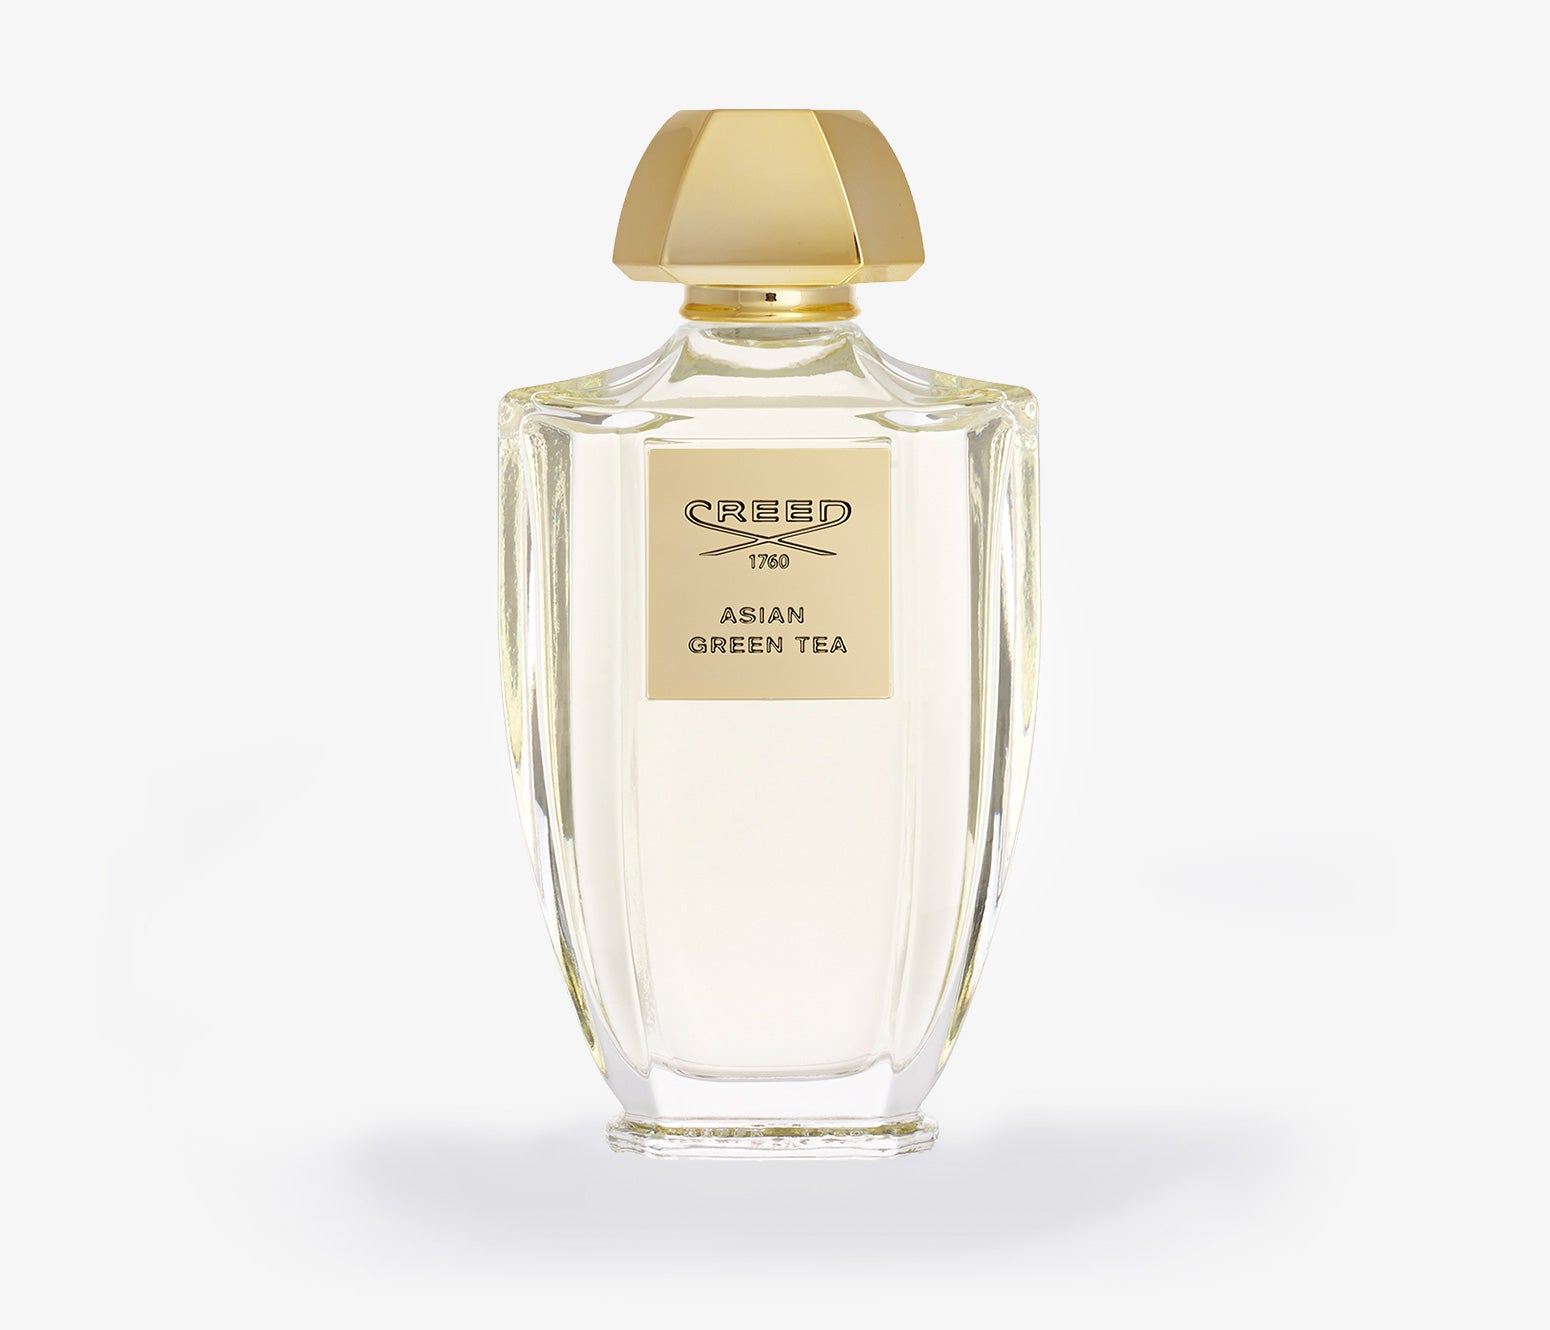 Creed - Asian Green Tea - 100ml - SKV001 - Product Image - Fragrance - Les Senteurs